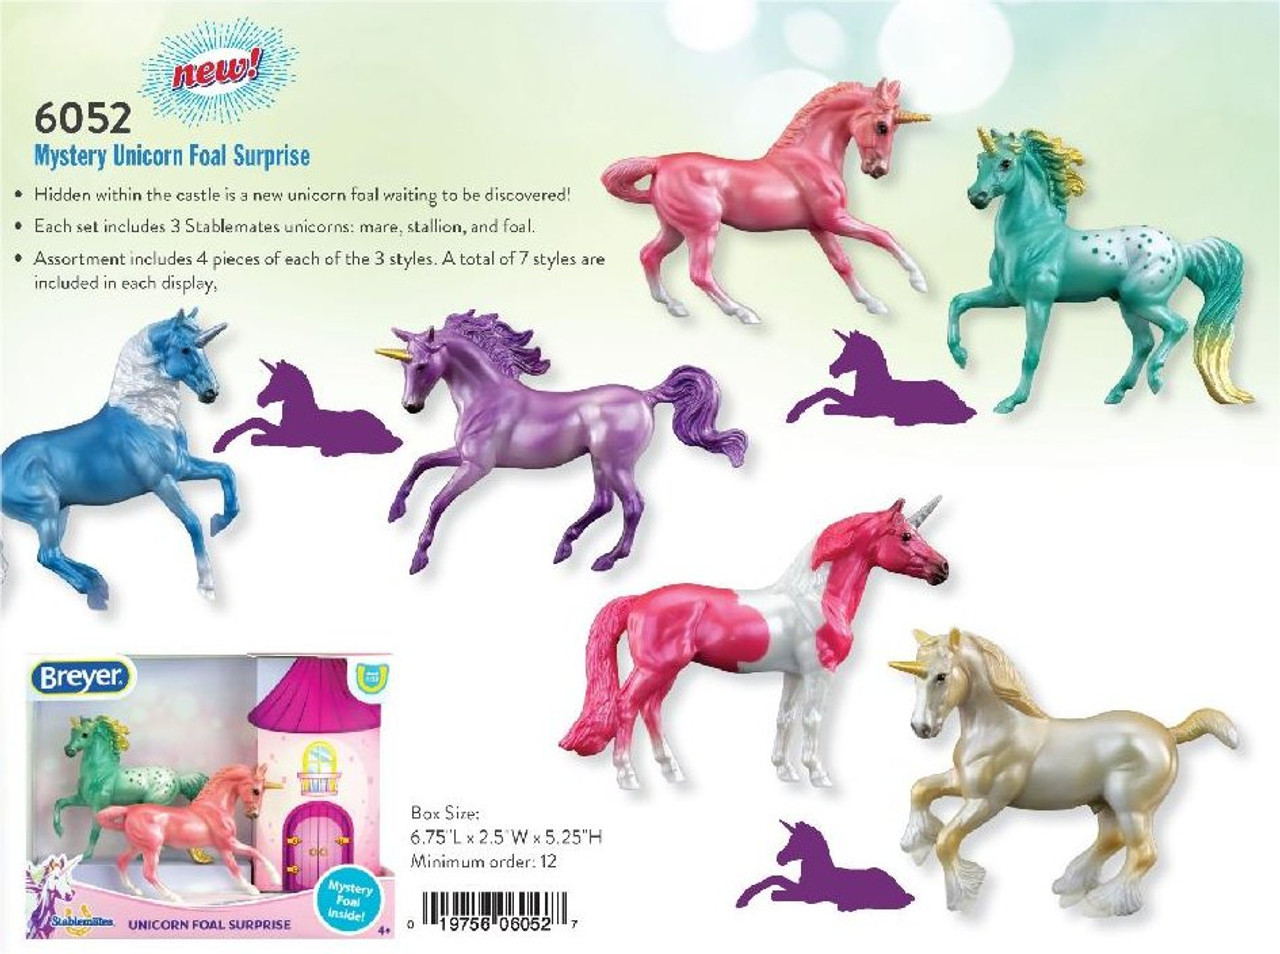 Breyer Horses Stablemate Mystery Unicorn Foal Surprise Includes All Three Different Sets Golden Oak Stables